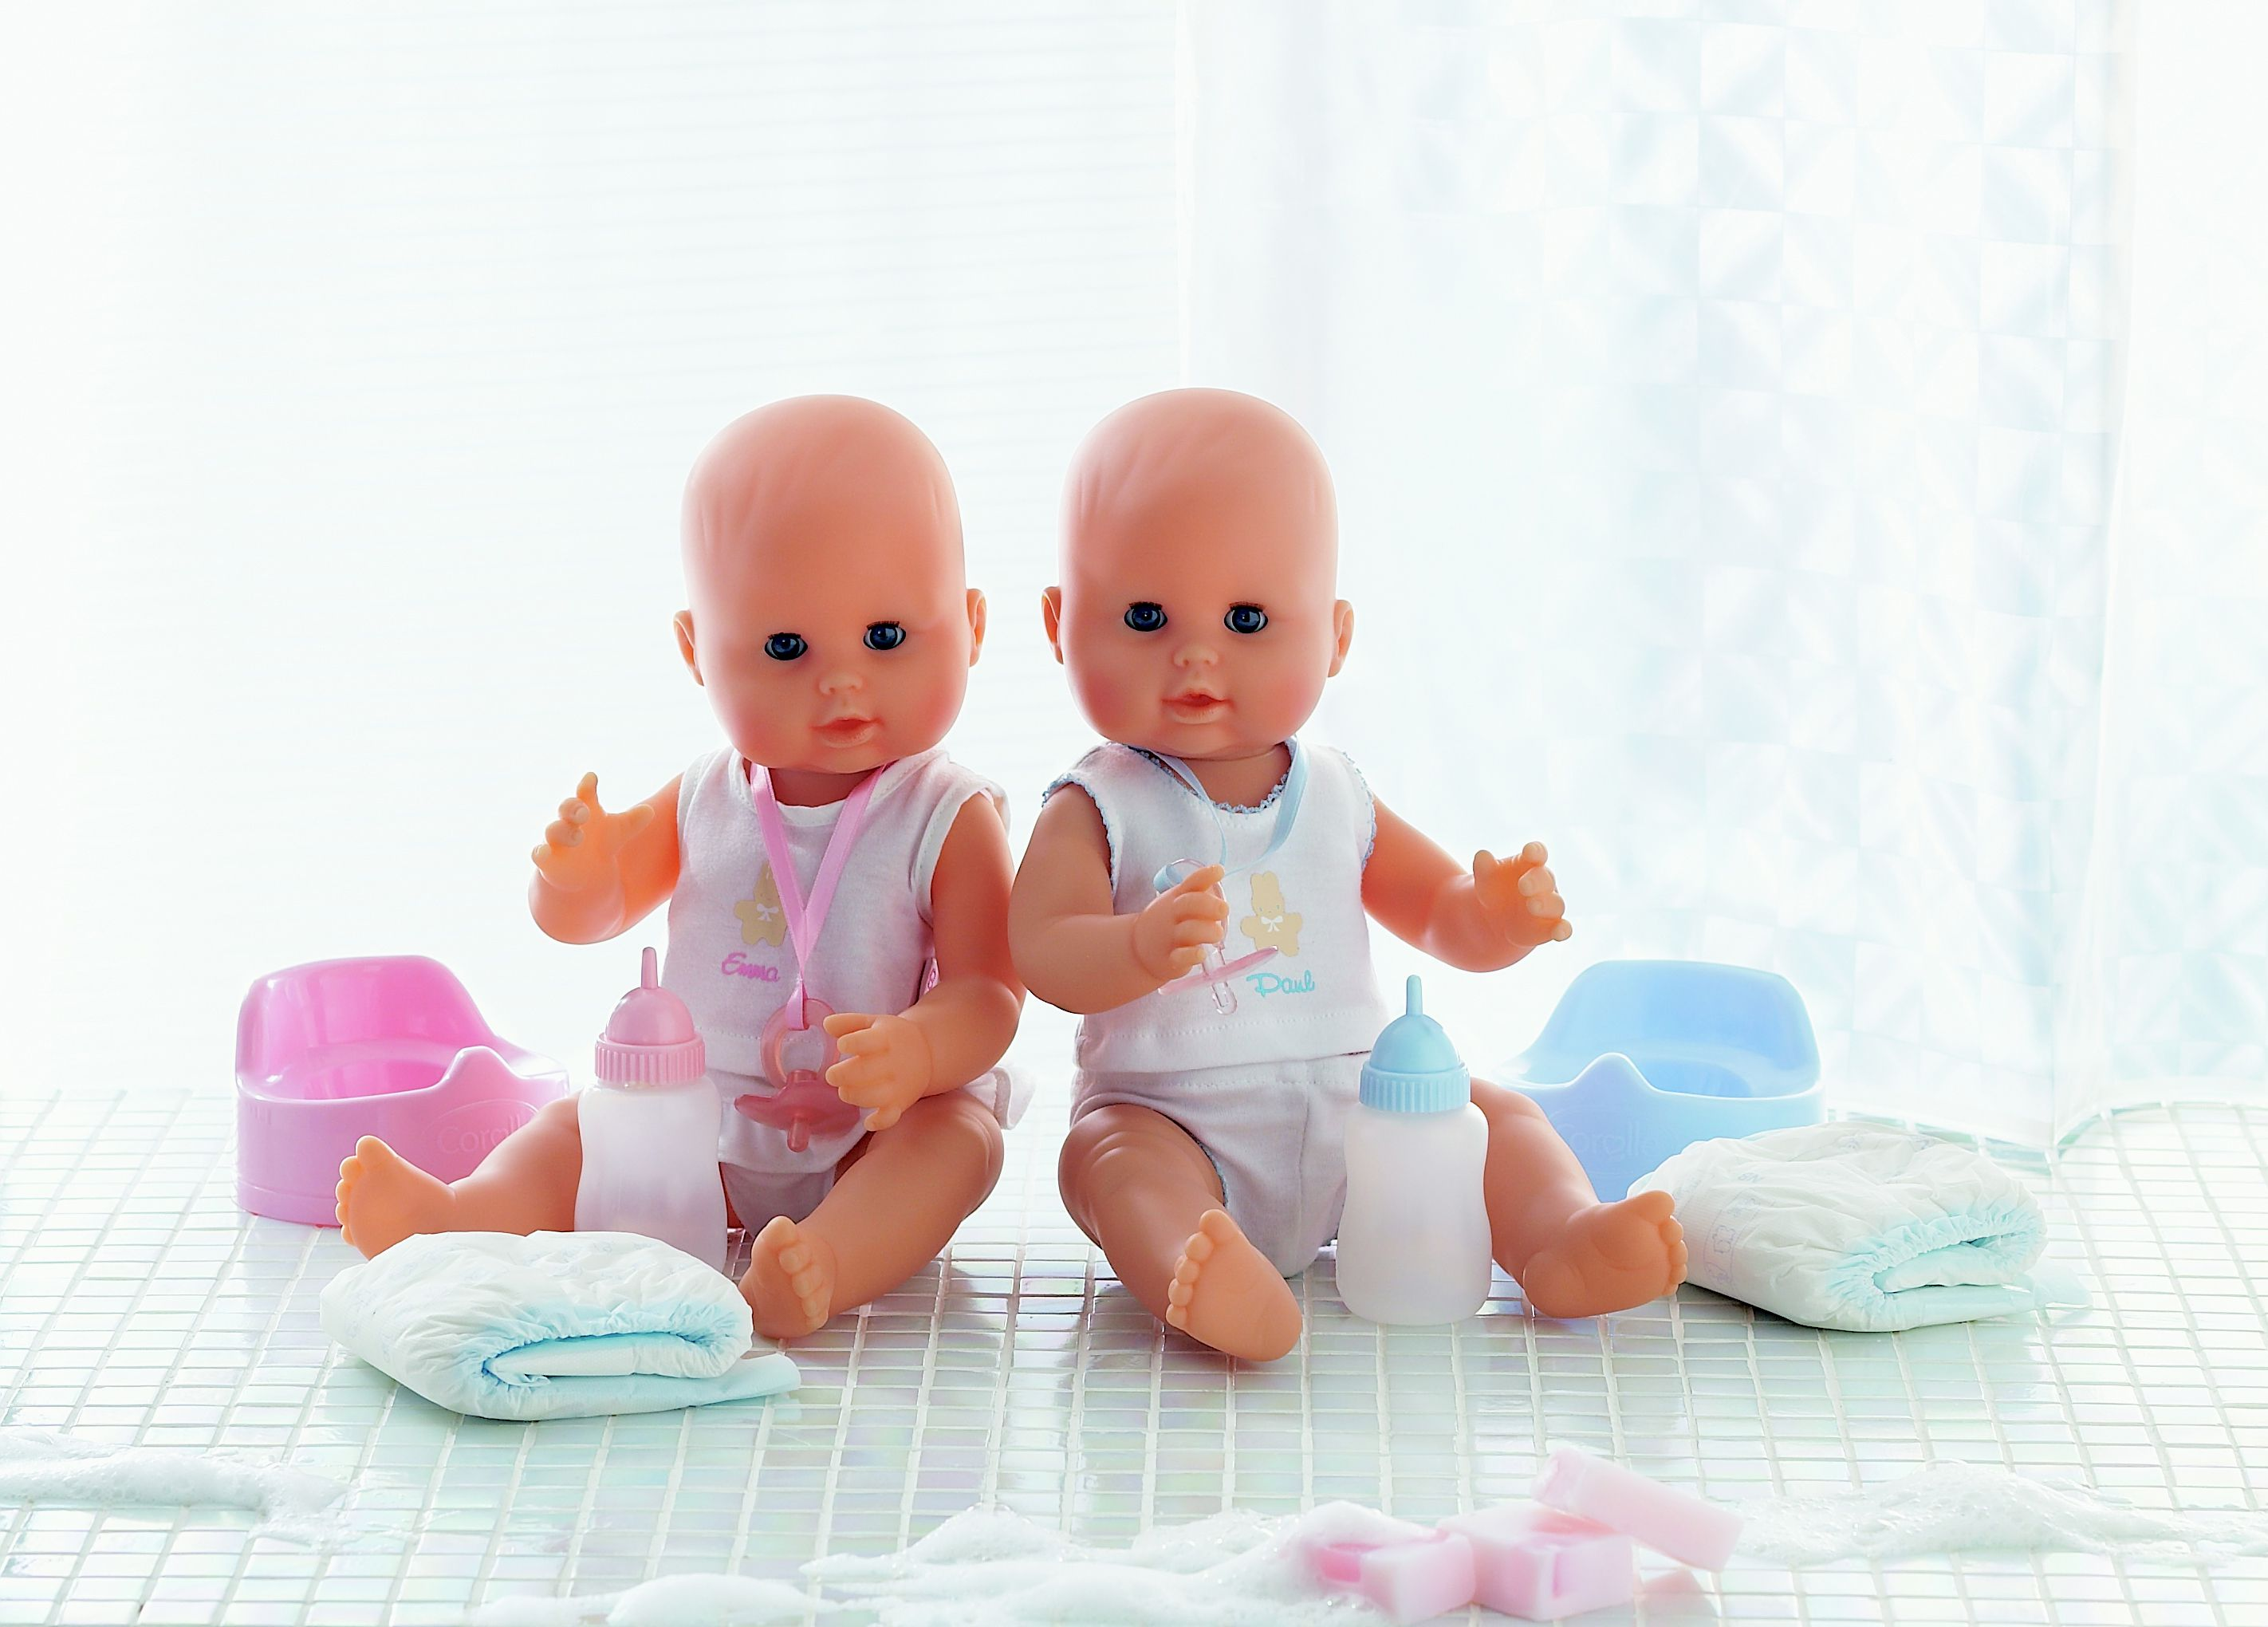 The 10 Best Baby Dolls for Girls to Buy in 2018